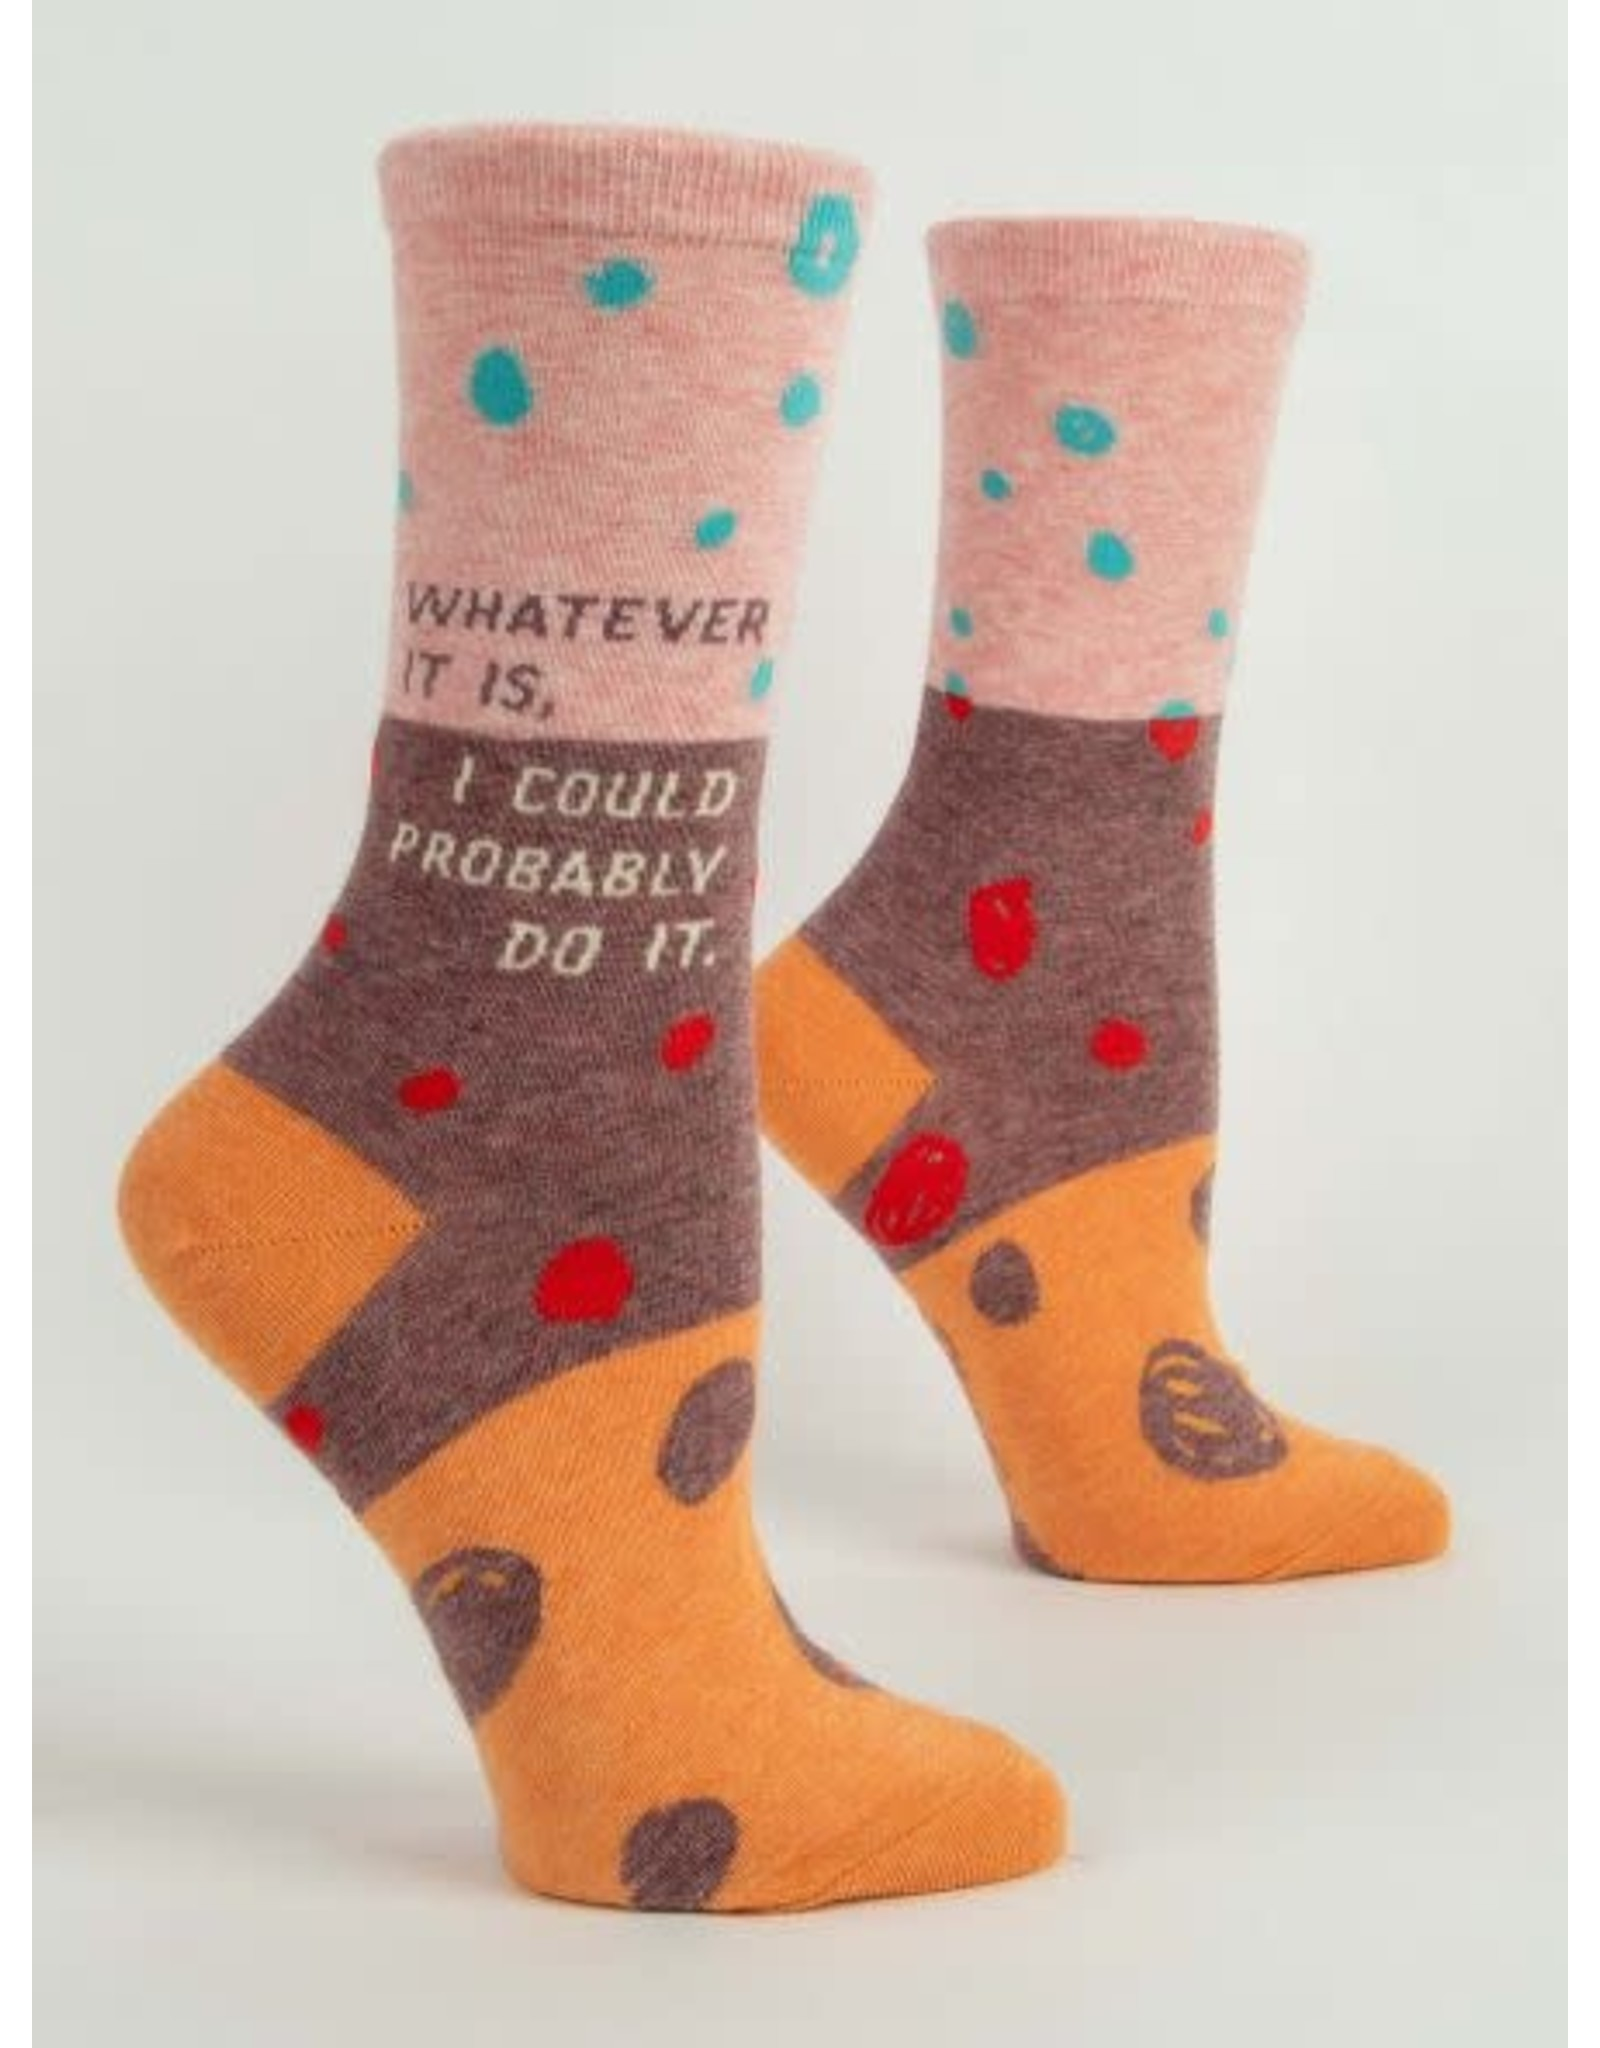 BQ Sassy Socks - Whatever